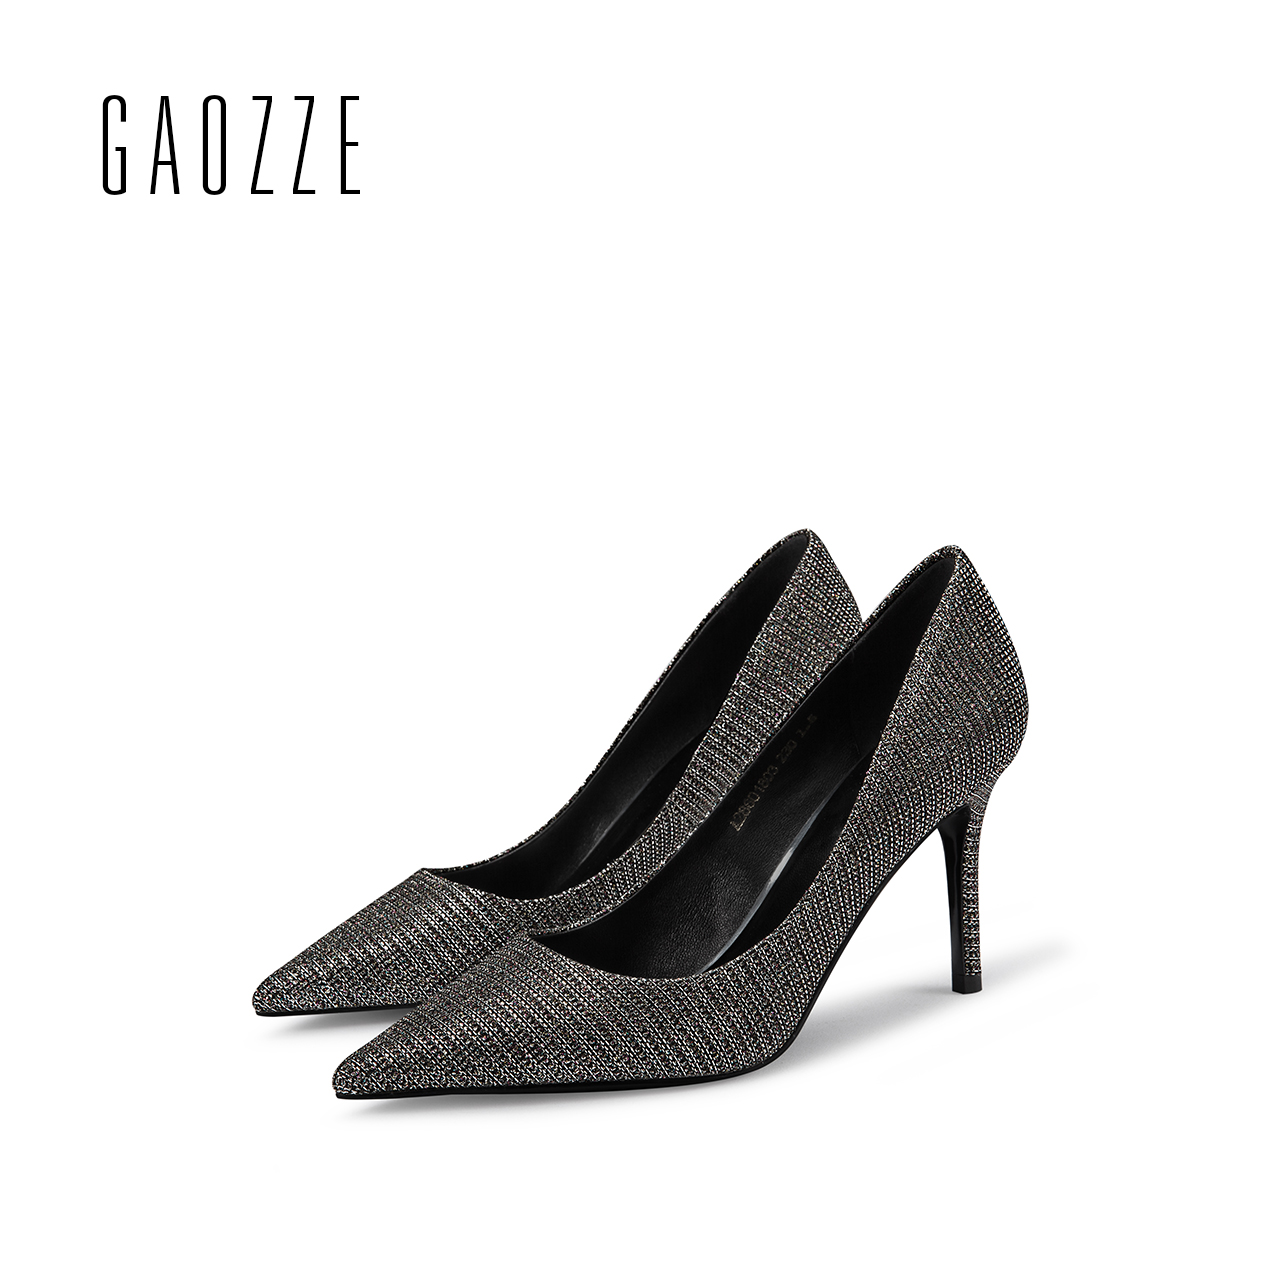 GAOZZE Striped Sequin Cloth Pointed Toe Party Women Pumps Shoes Sexy High Heels Women Pumps Stiletto Heel Shoes 2018 Spring New wholesale lttl new spring summer high heels shoes stiletto heel flock pointed toe sandals fashion ankle straps women party shoes